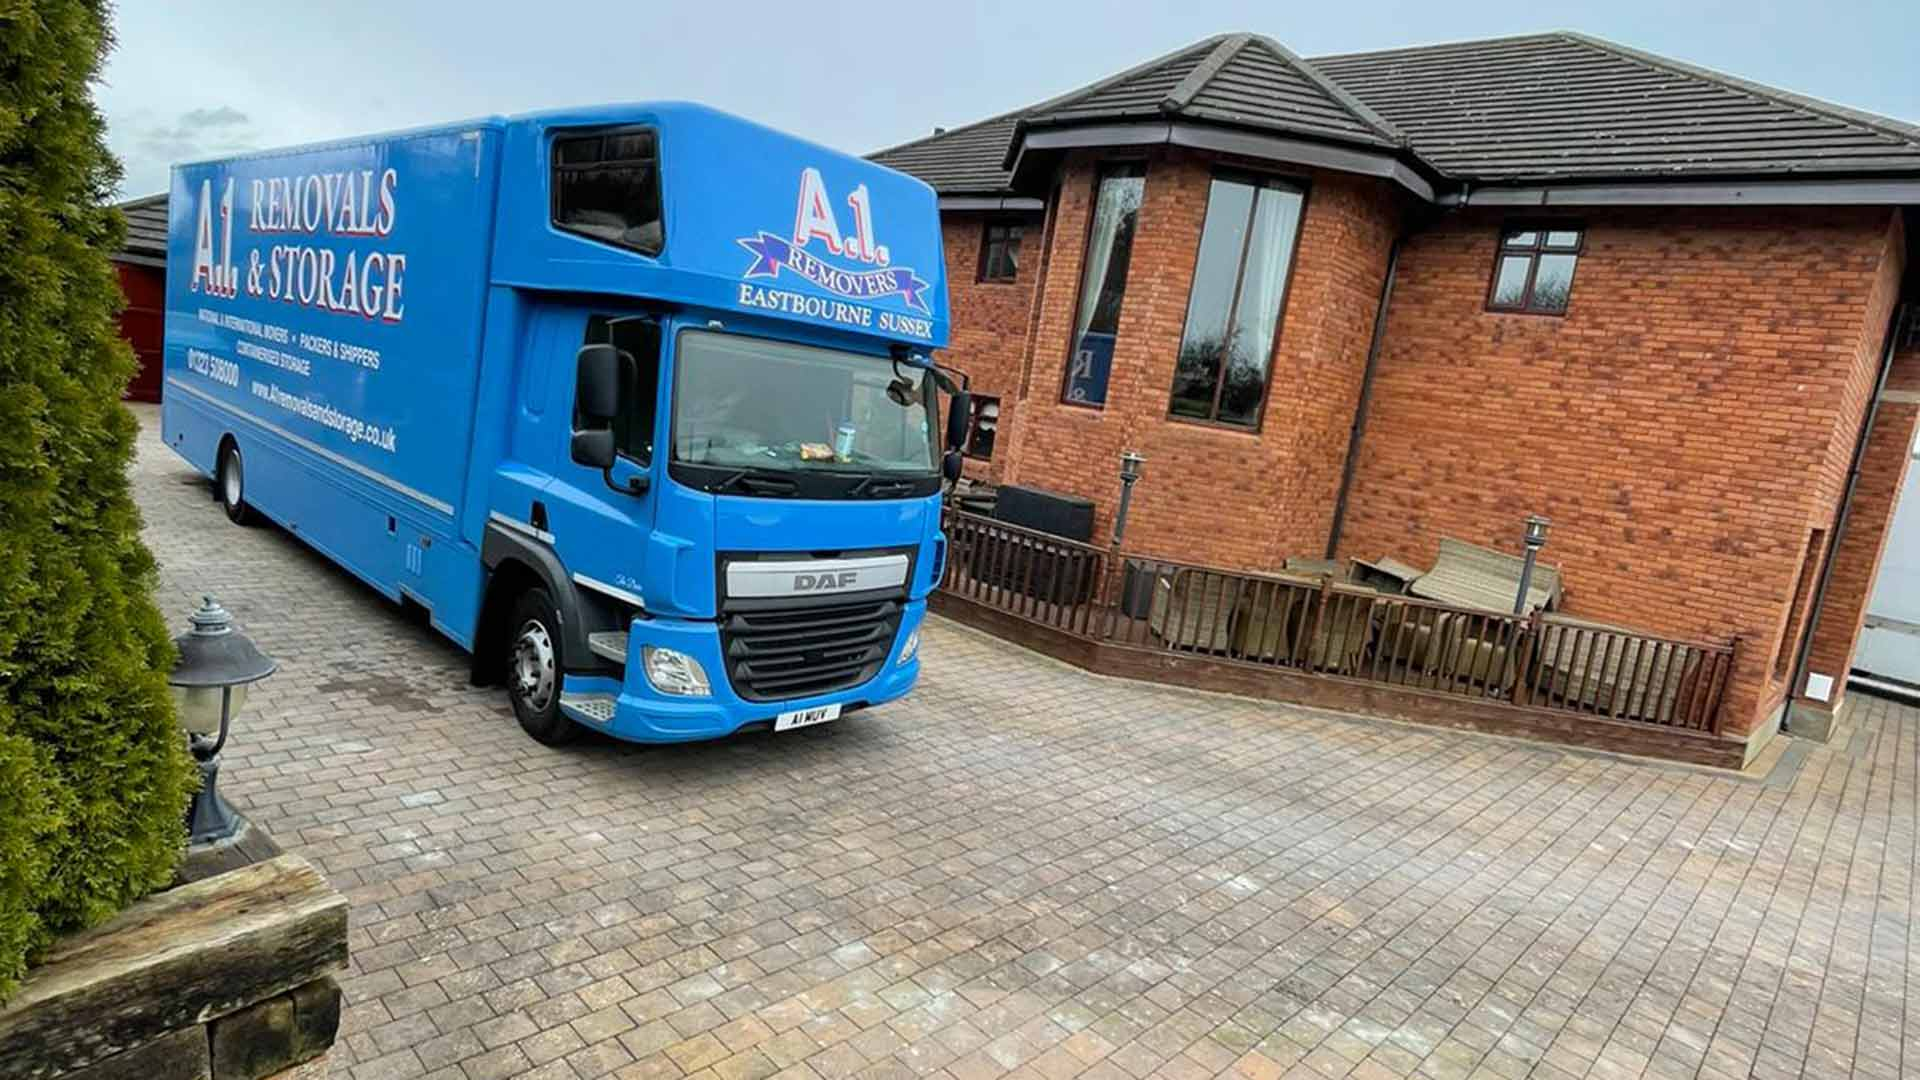 A1 Removals & Storage removals truck outside a large house